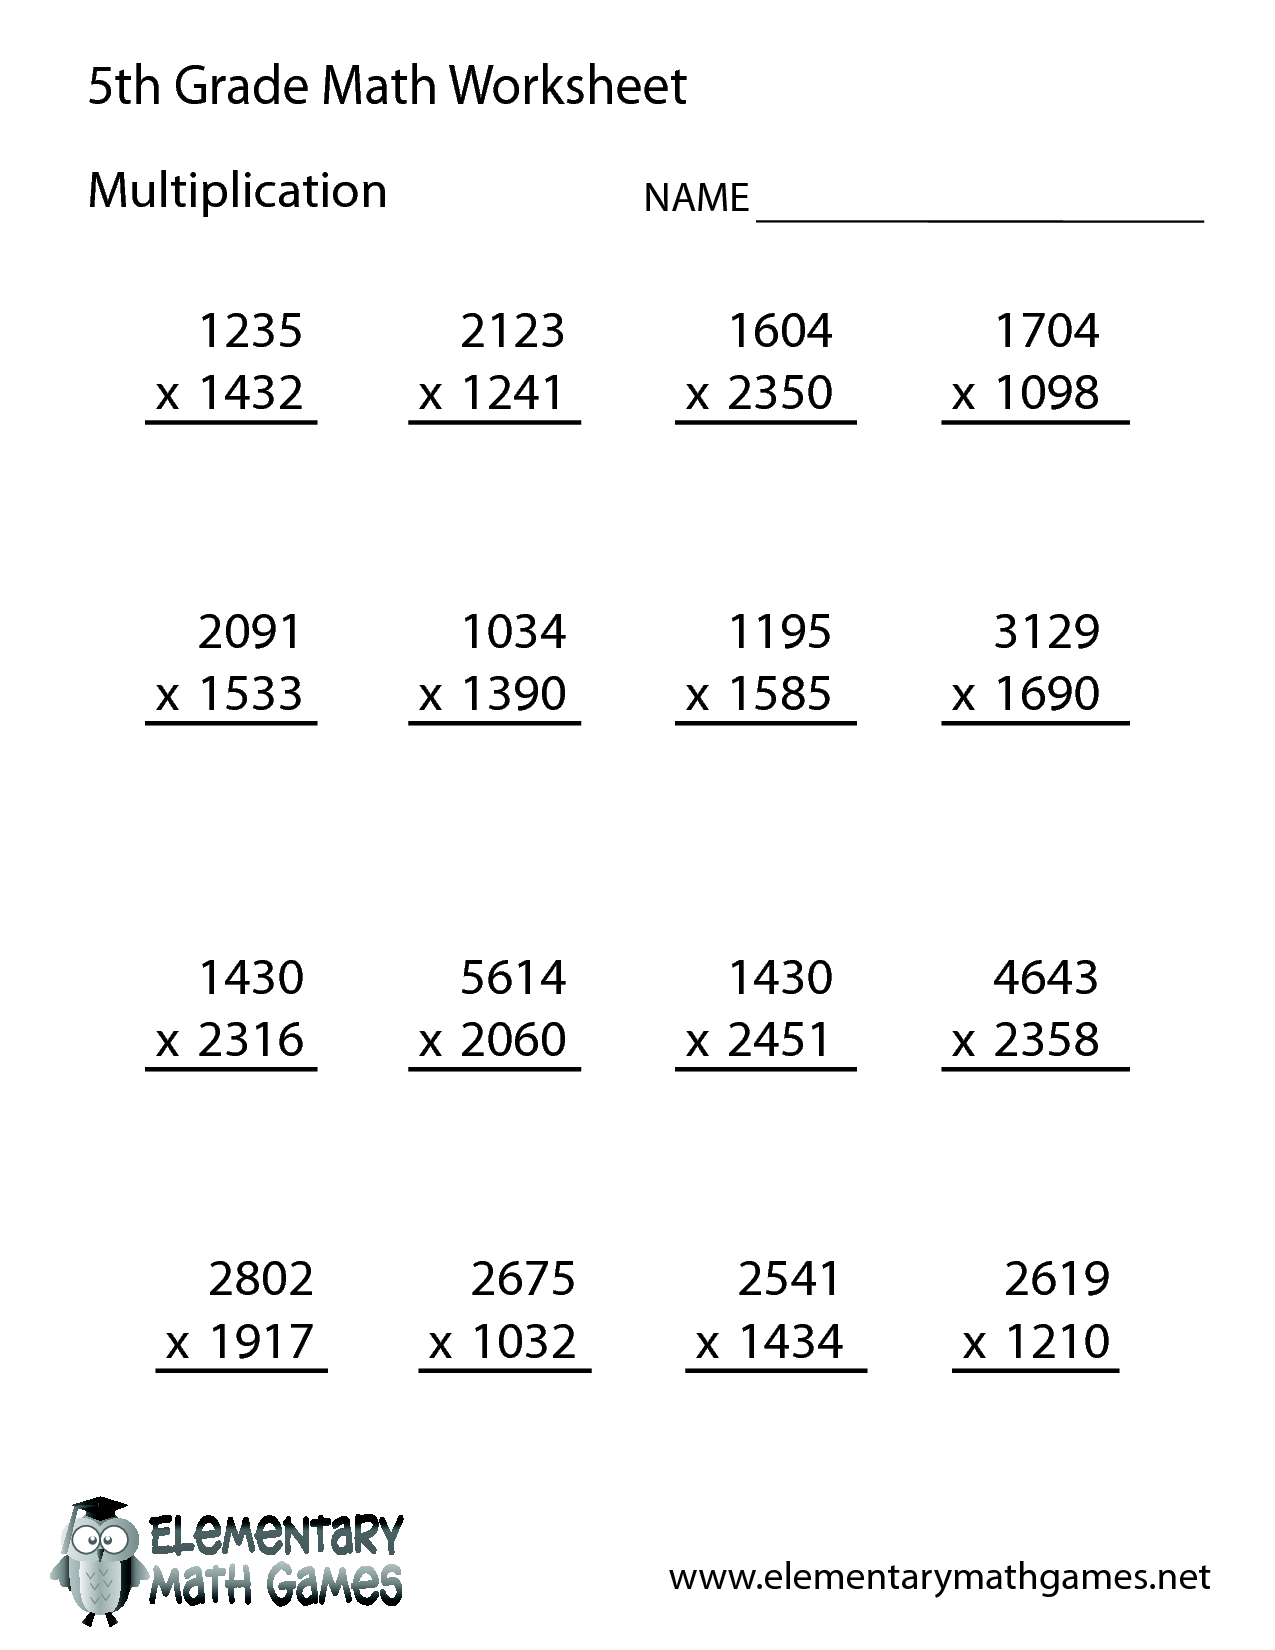 Worksheet 5th Grade Math Questions free math worksheets for 5th grade worksheet worksheet